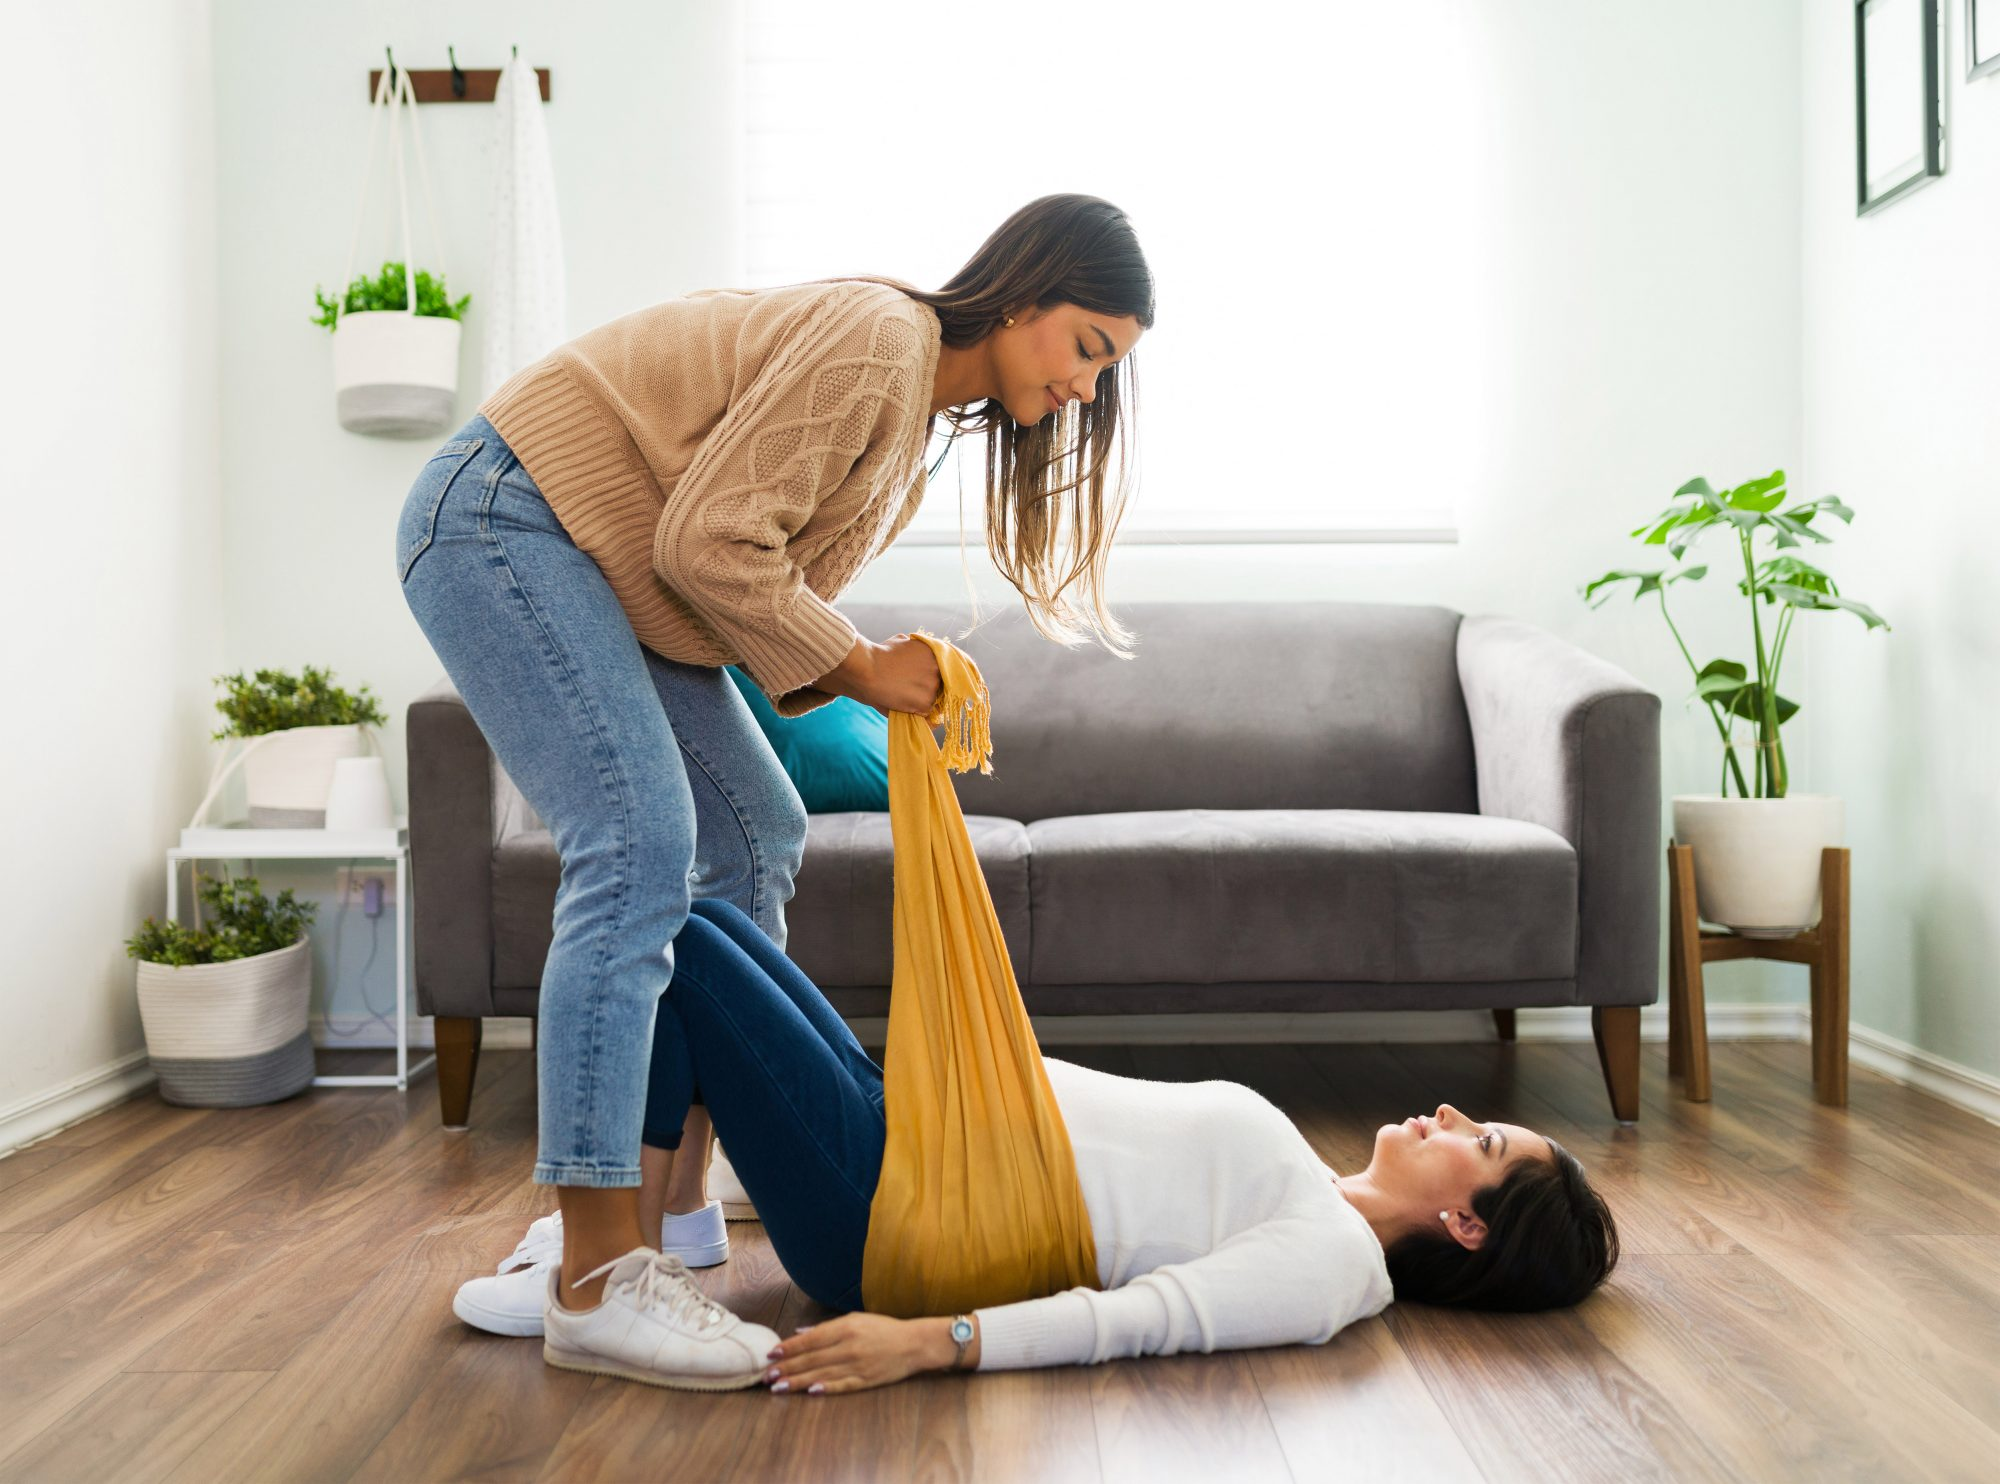 An image of a doula helping a pregnant woman.